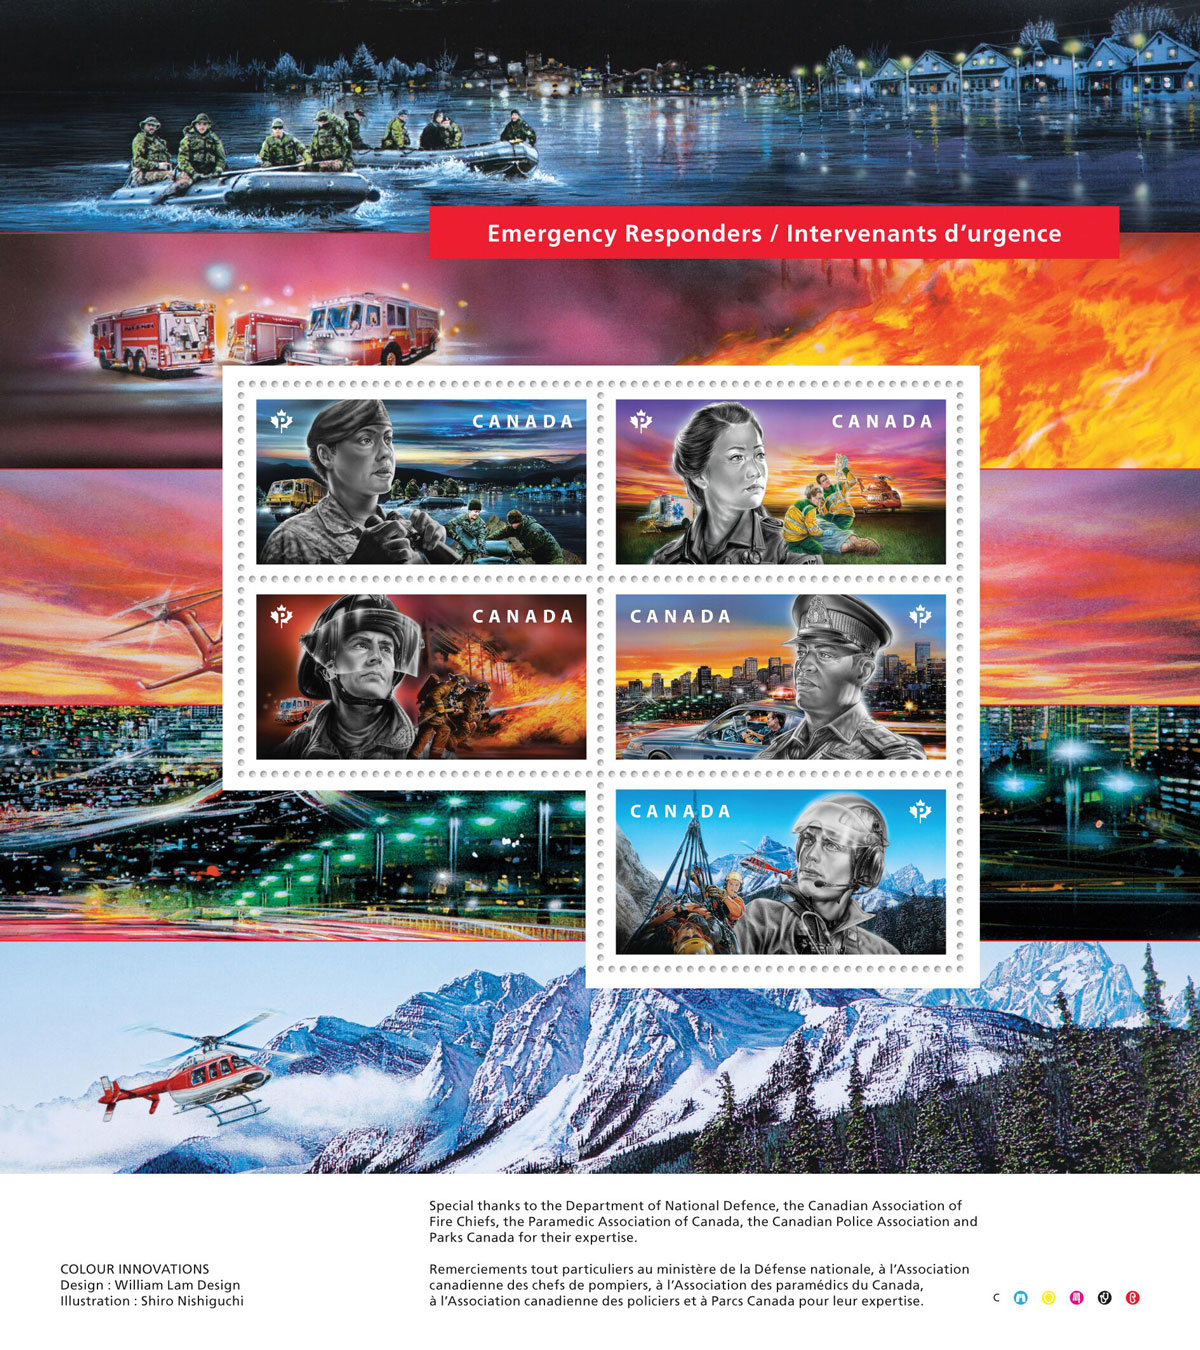 Five-Stamp Salute for Canada's Emergency Responders